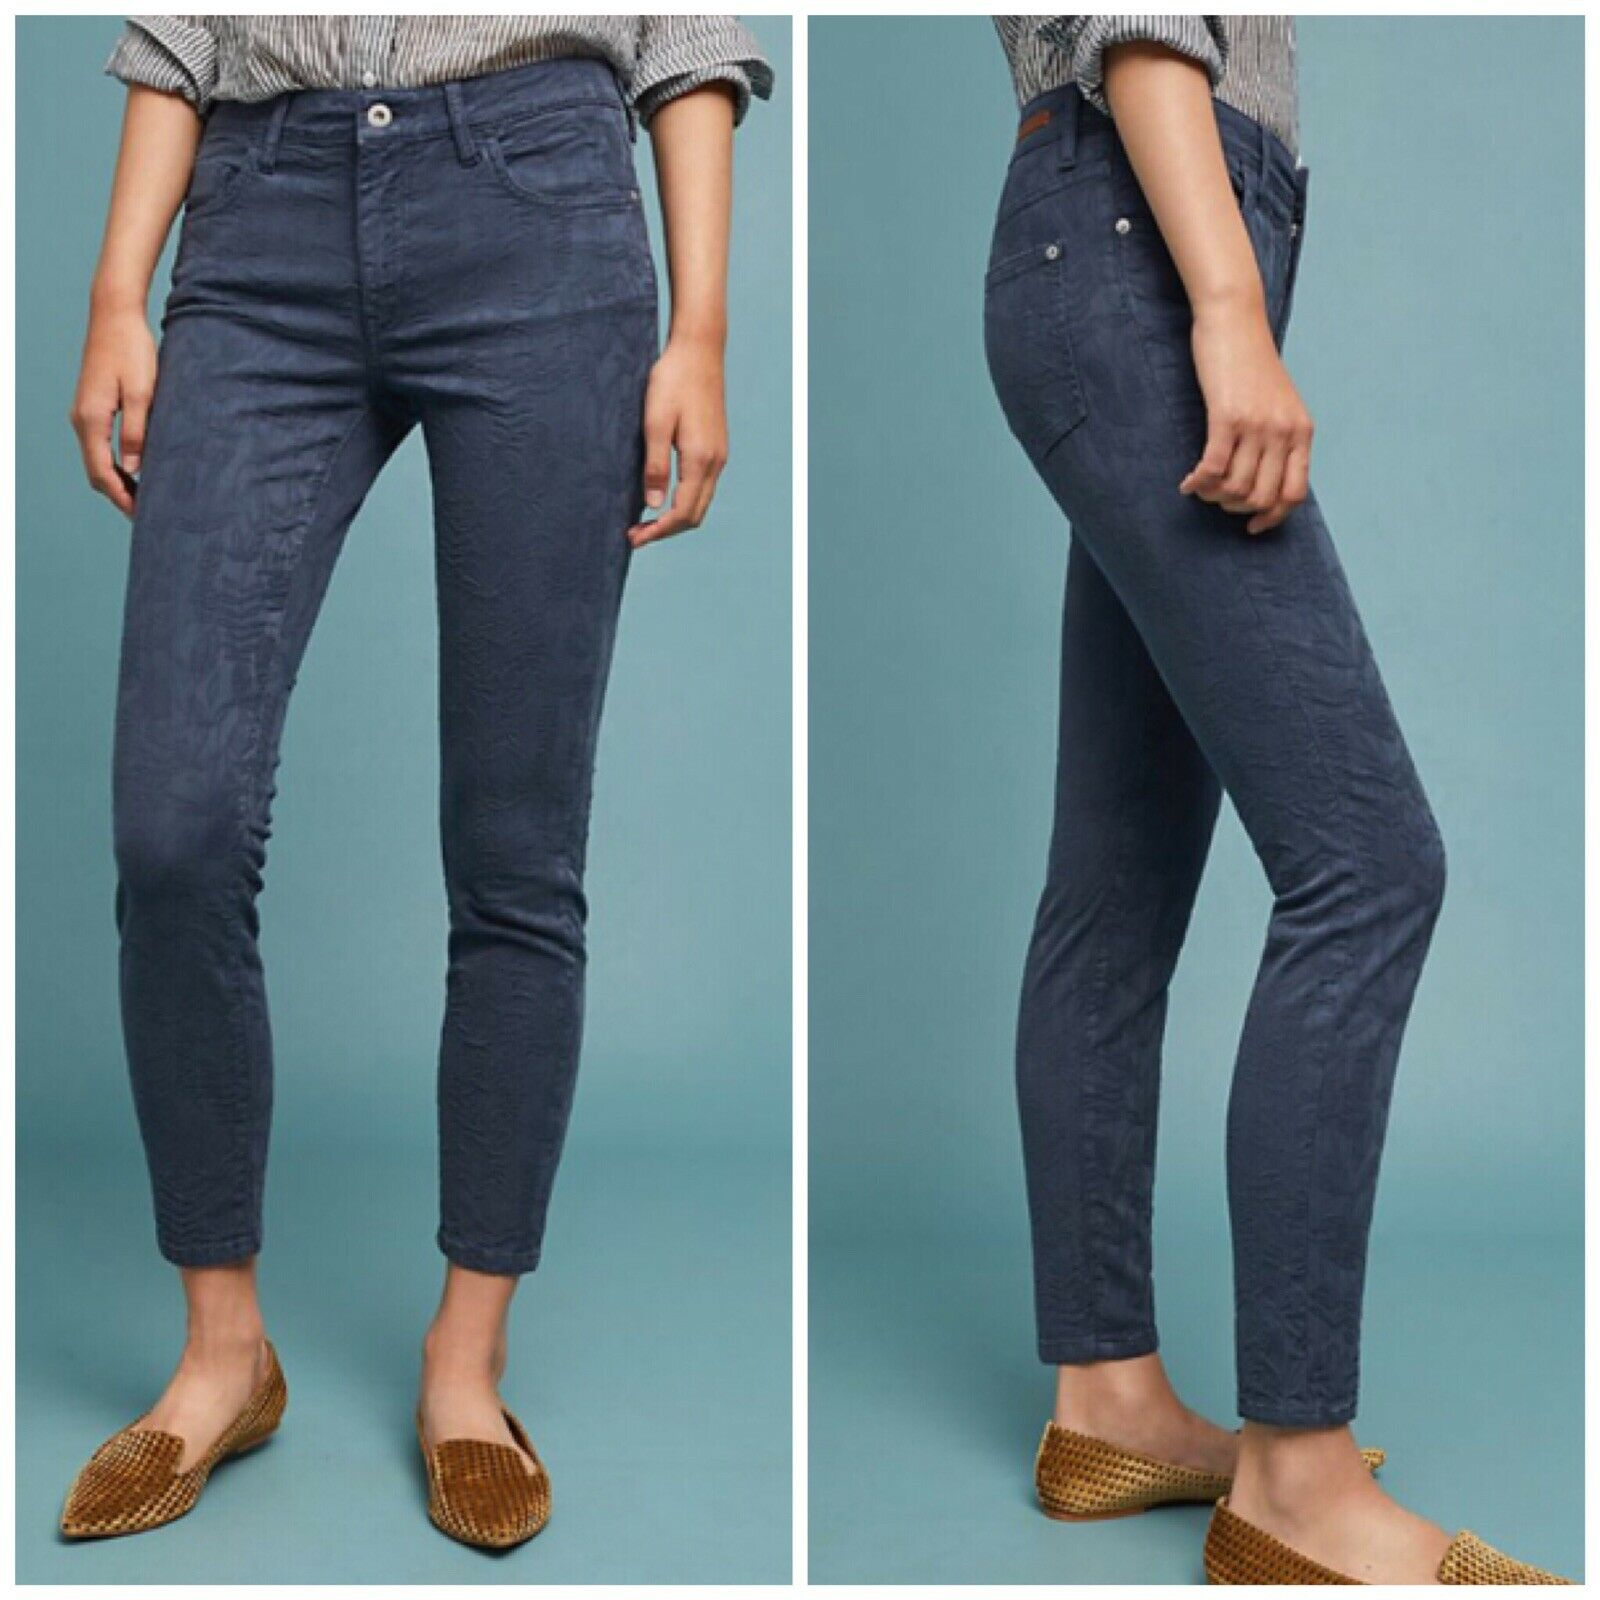 Anthropologie Pilcro And The Letterpress Skinny Ankle Jean Woman Size 25 New